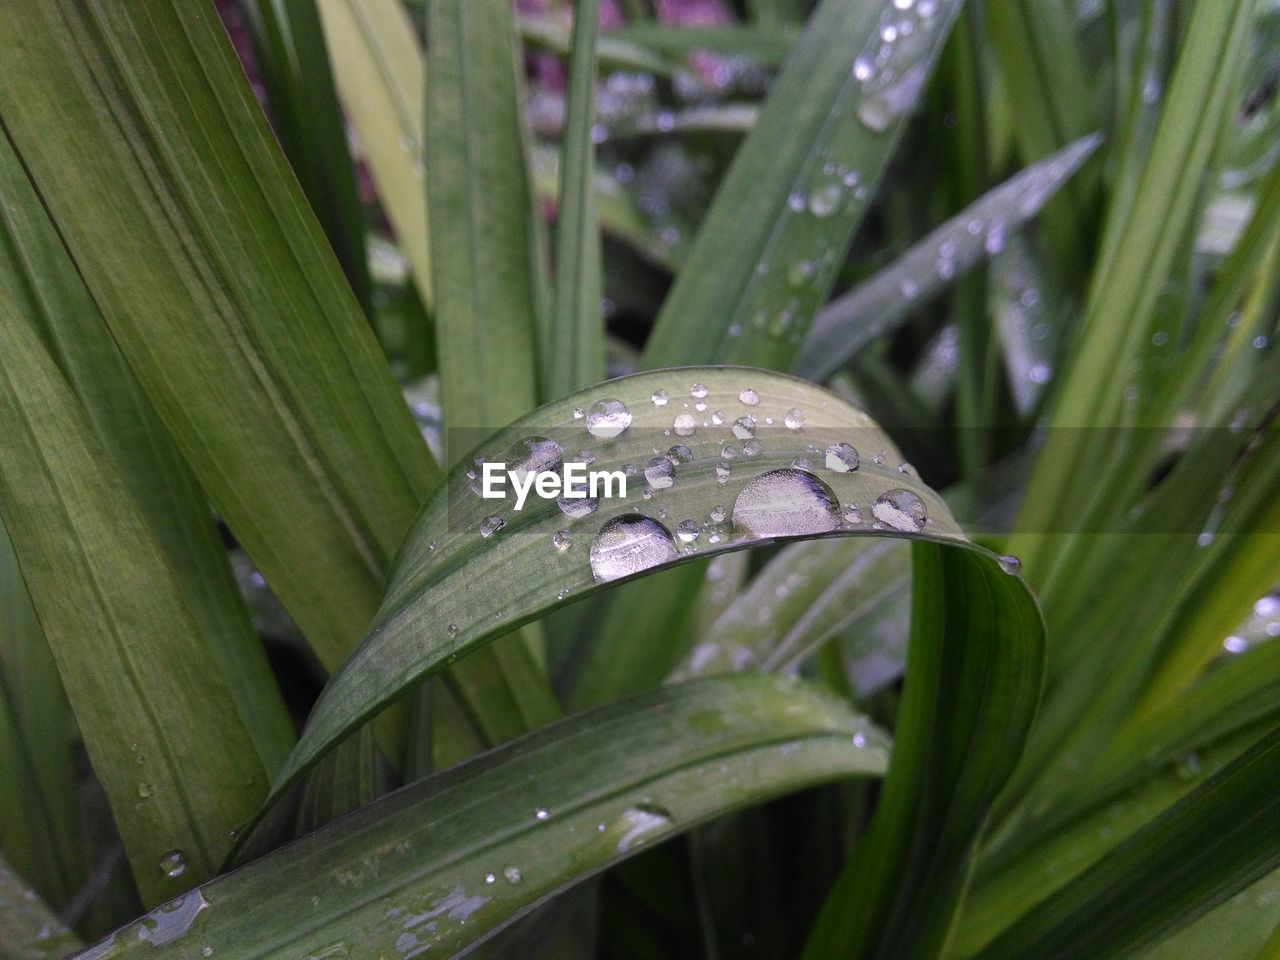 plant, water, wet, growth, drop, leaf, plant part, close-up, green color, nature, beauty in nature, no people, blade of grass, day, freshness, grass, rain, outdoors, dew, raindrop, purity, rainy season